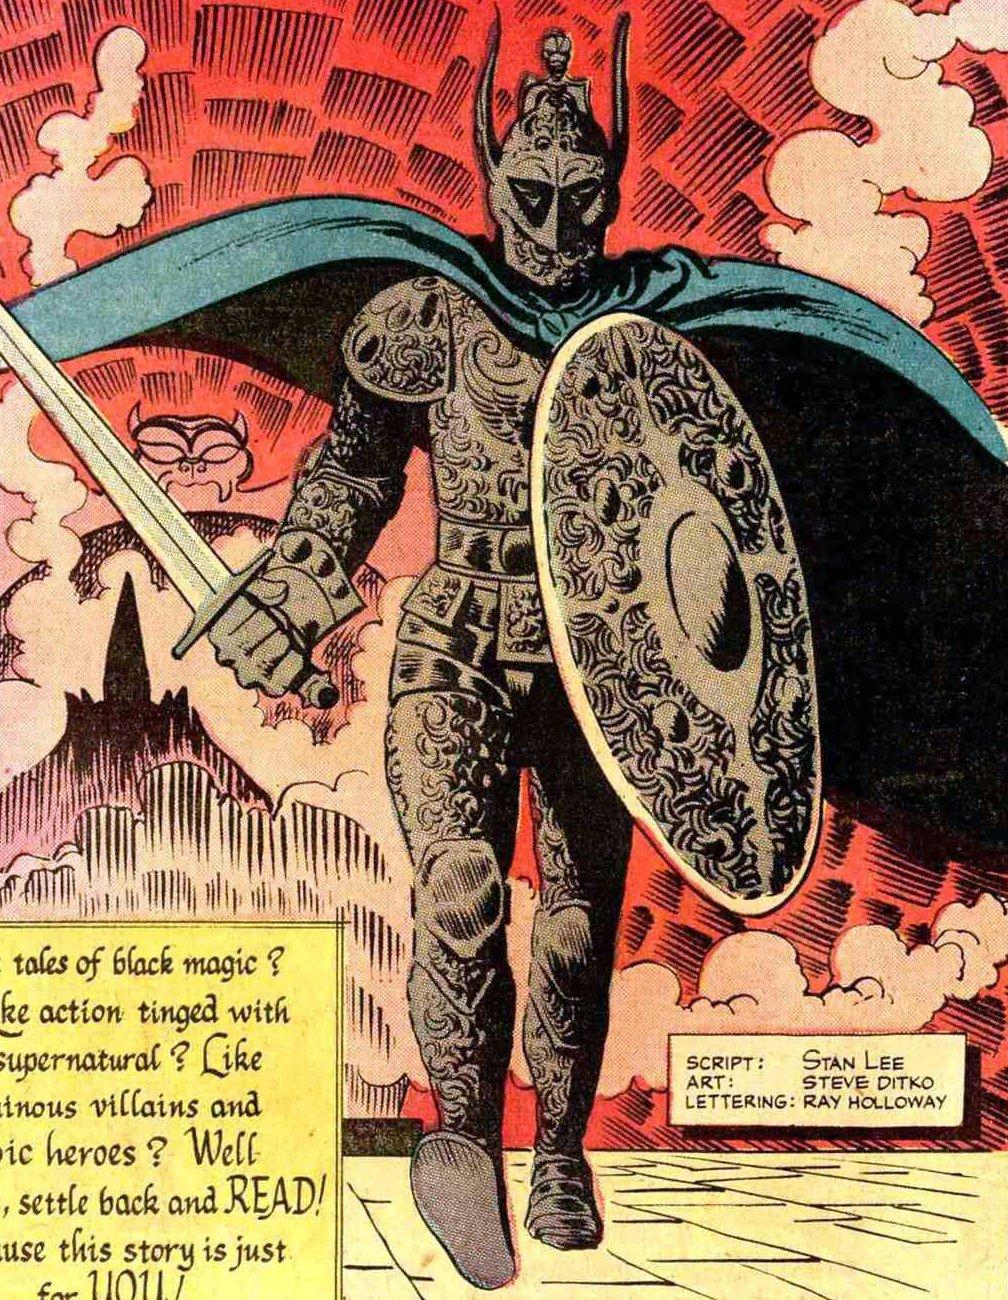 Strange Tales Vol 1 108 page 28 Black Knight (Animated Armor) (Earth-616).jpg